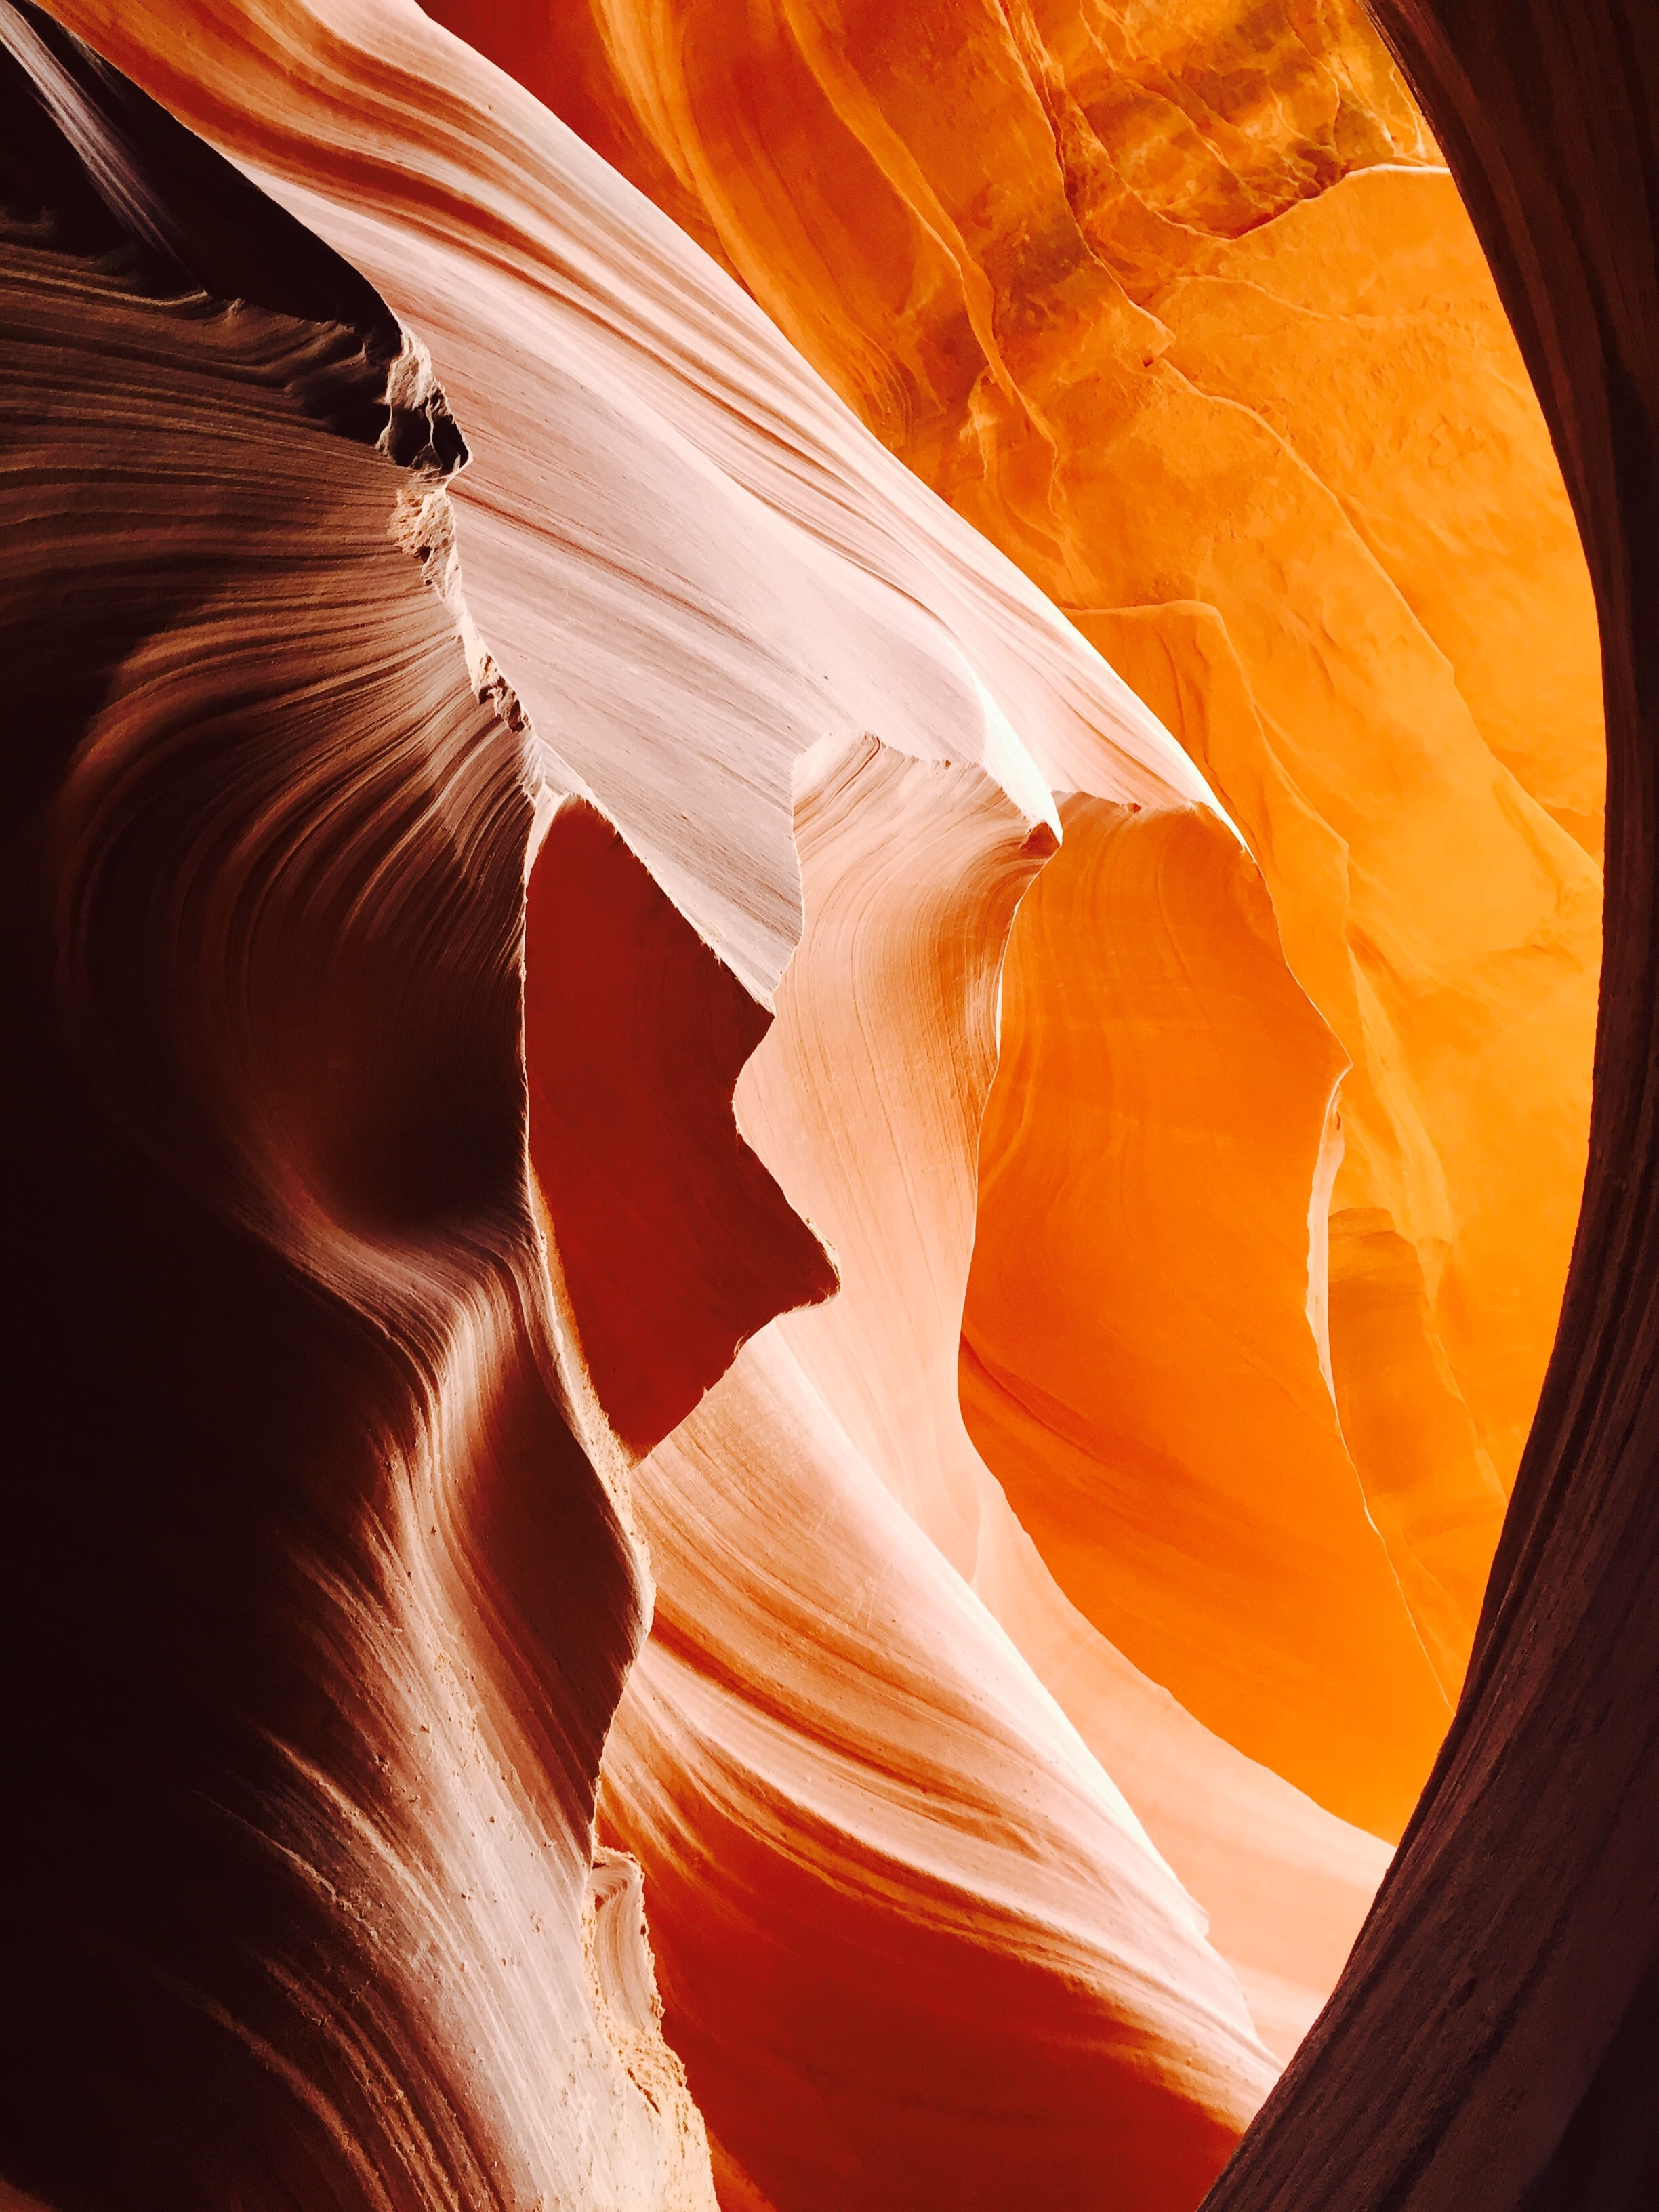 Swirling sandstone in a red canyon